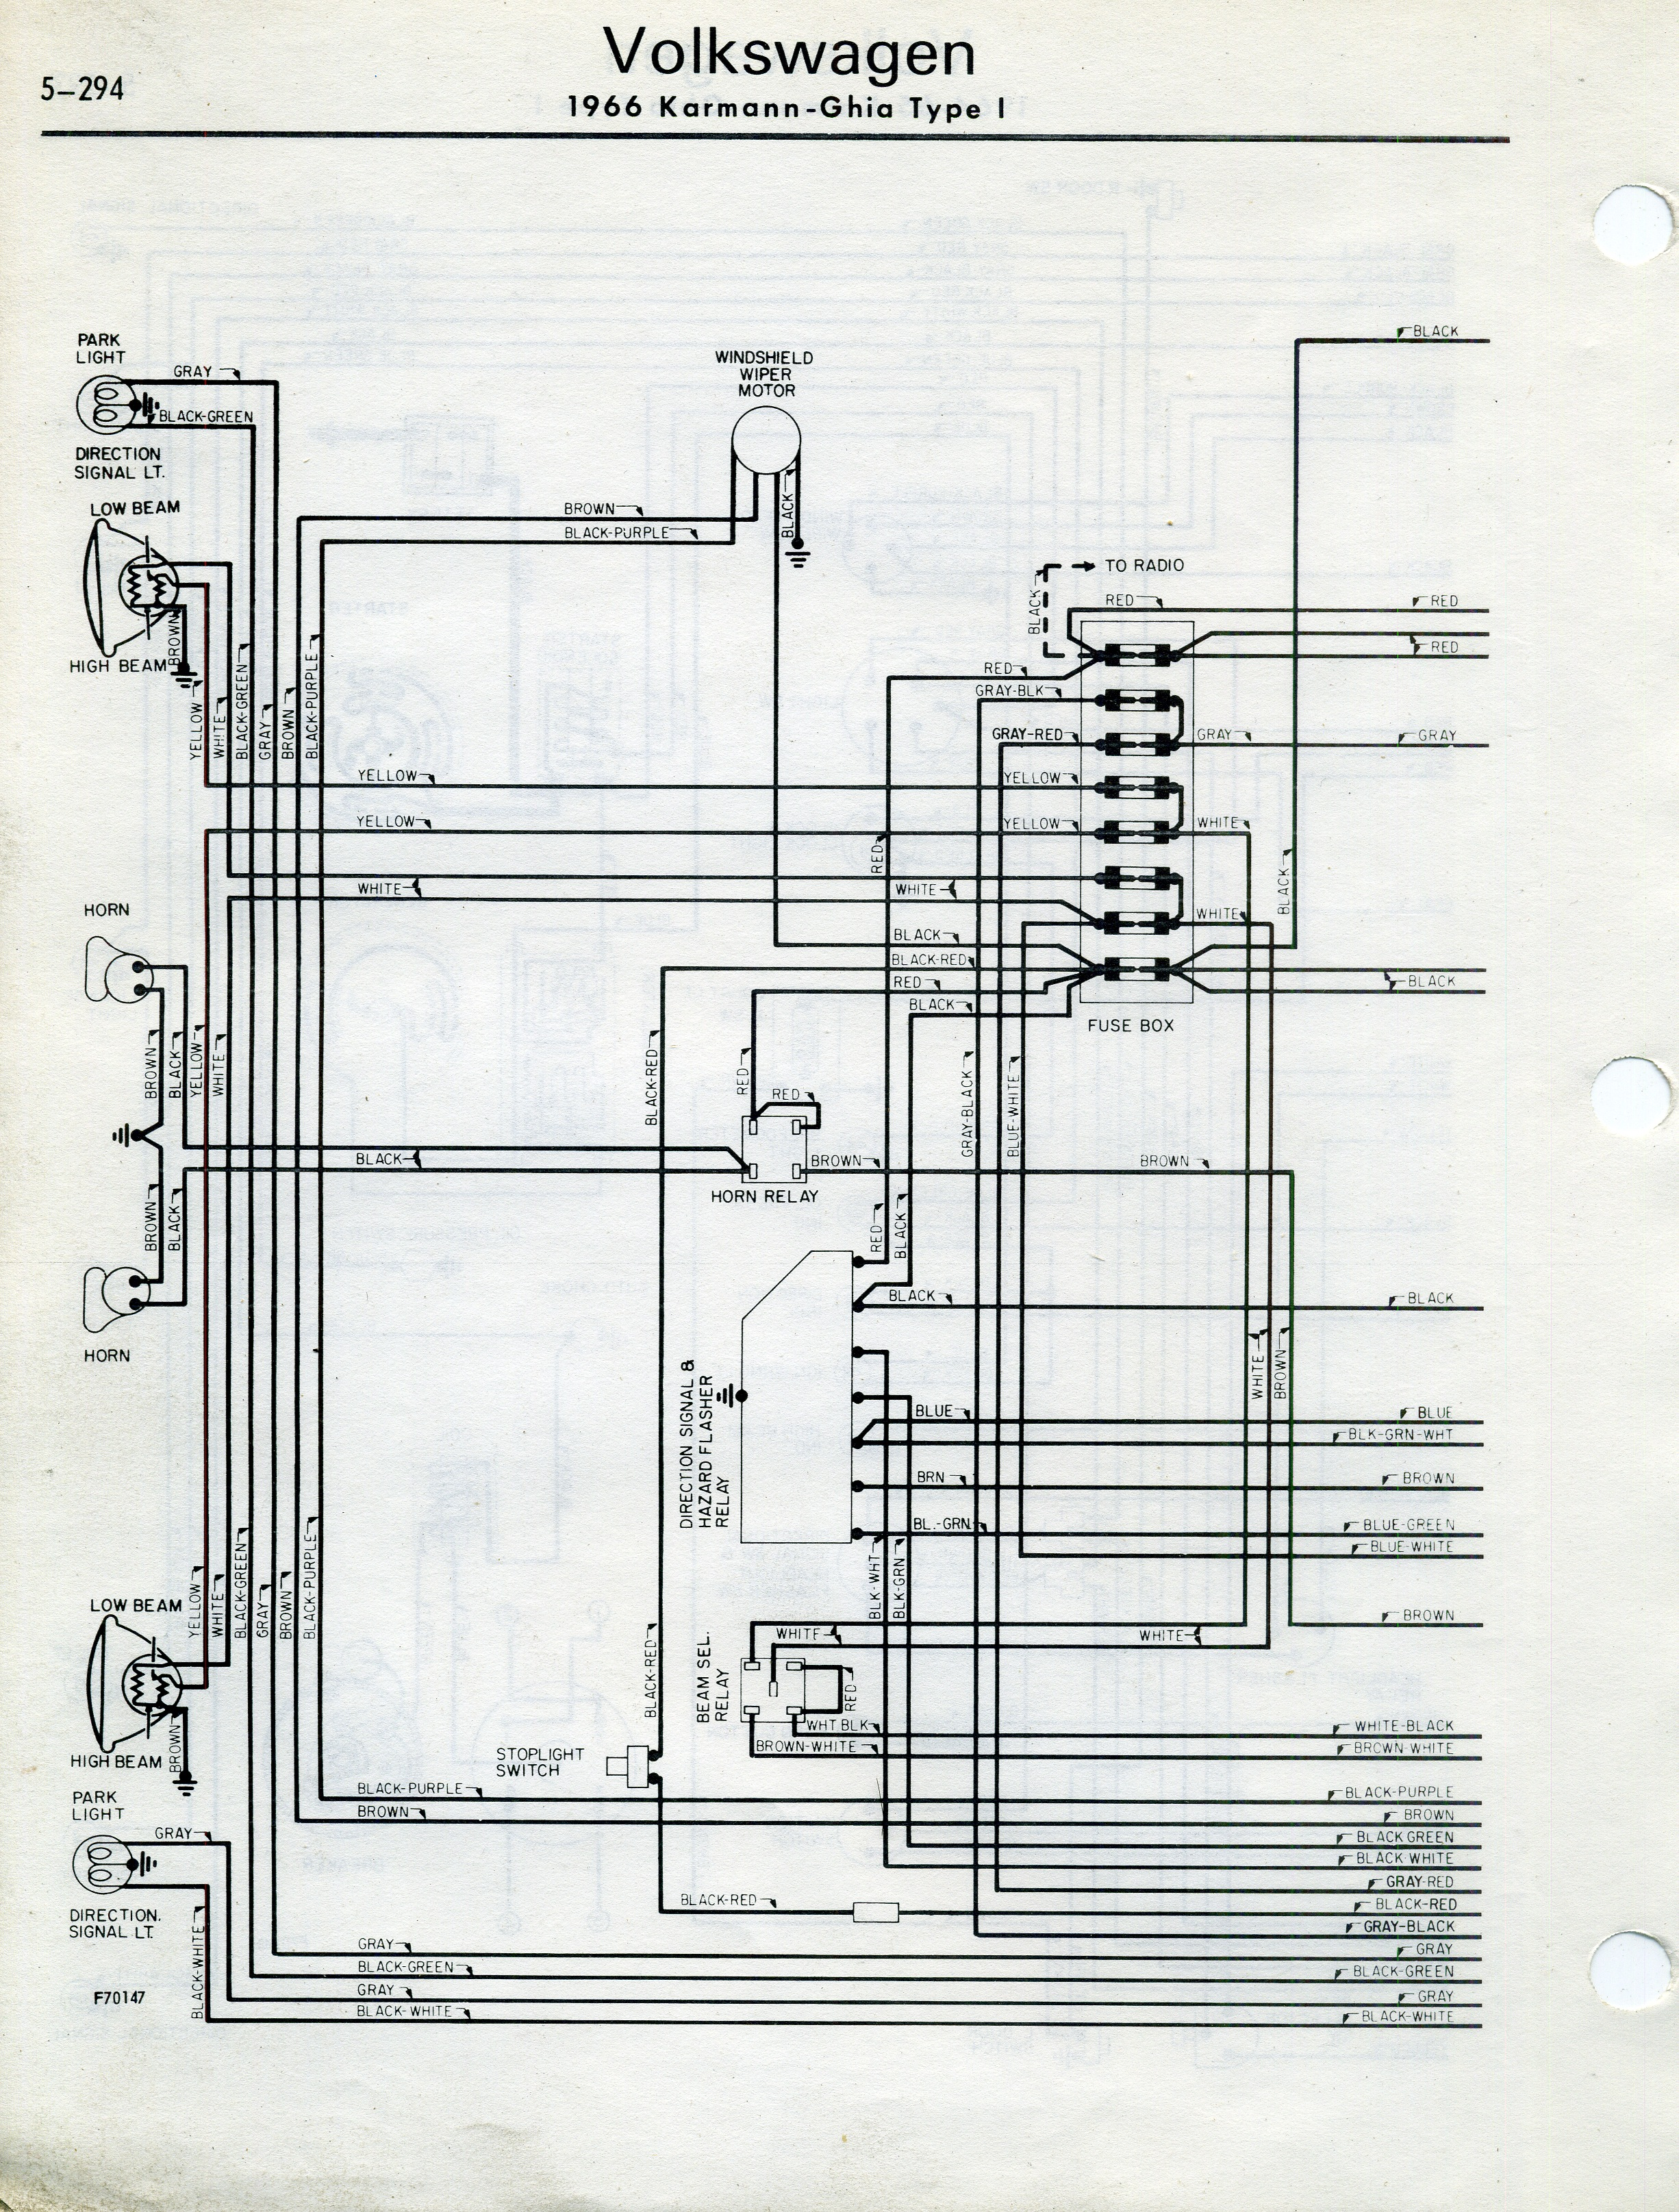 1974 karmann ghia wiring diagram 1967 vw karmann ghia wiring diagram